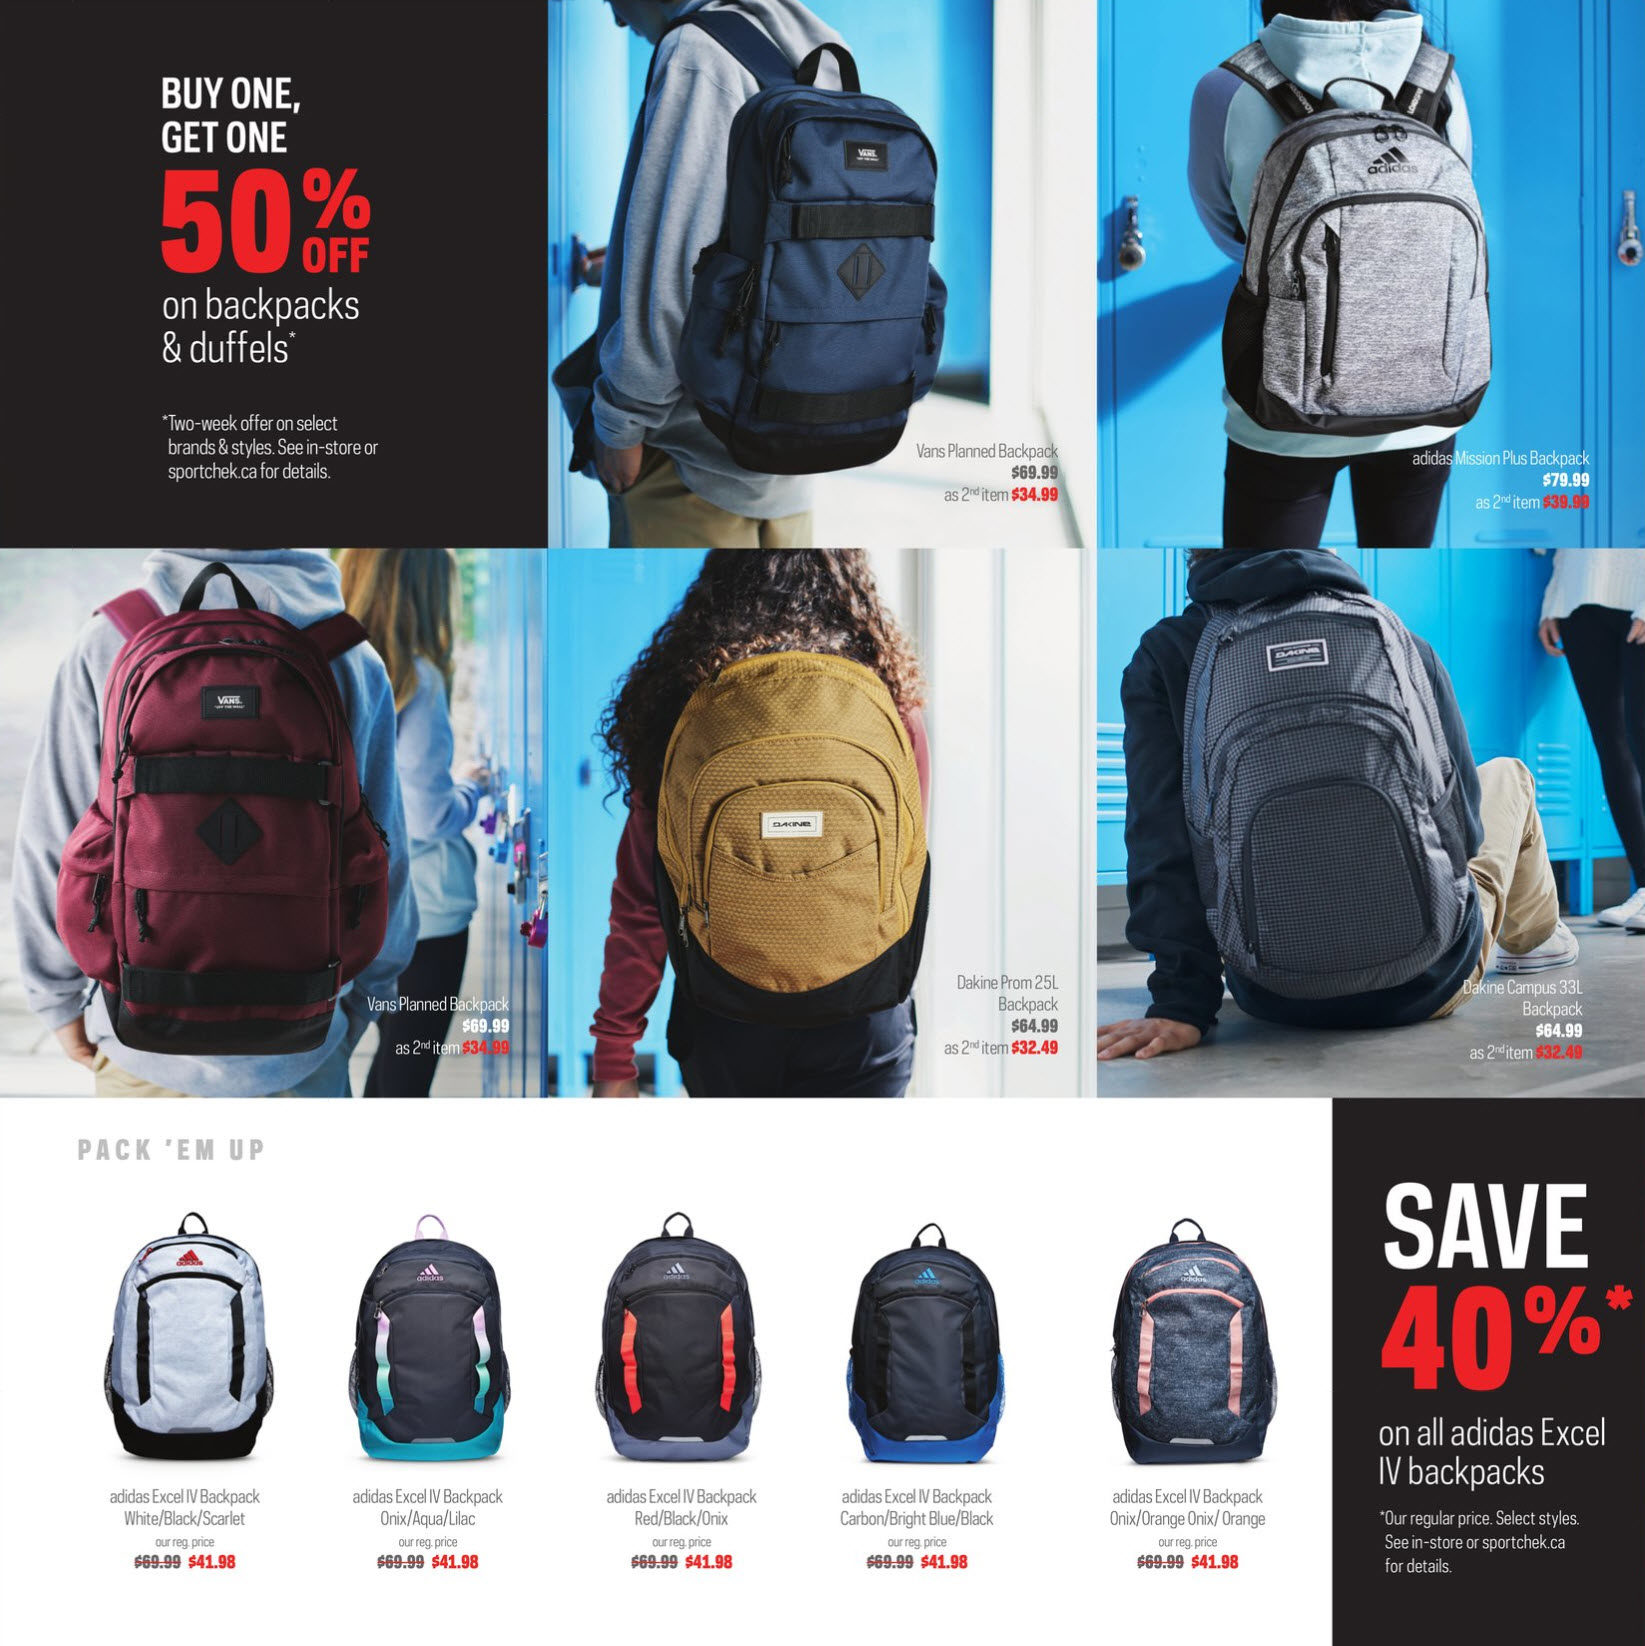 4a0bb60a27 Sport Chek Weekly Flyer - Move Into Fall - Aug 16 – 29 - RedFlagDeals.com